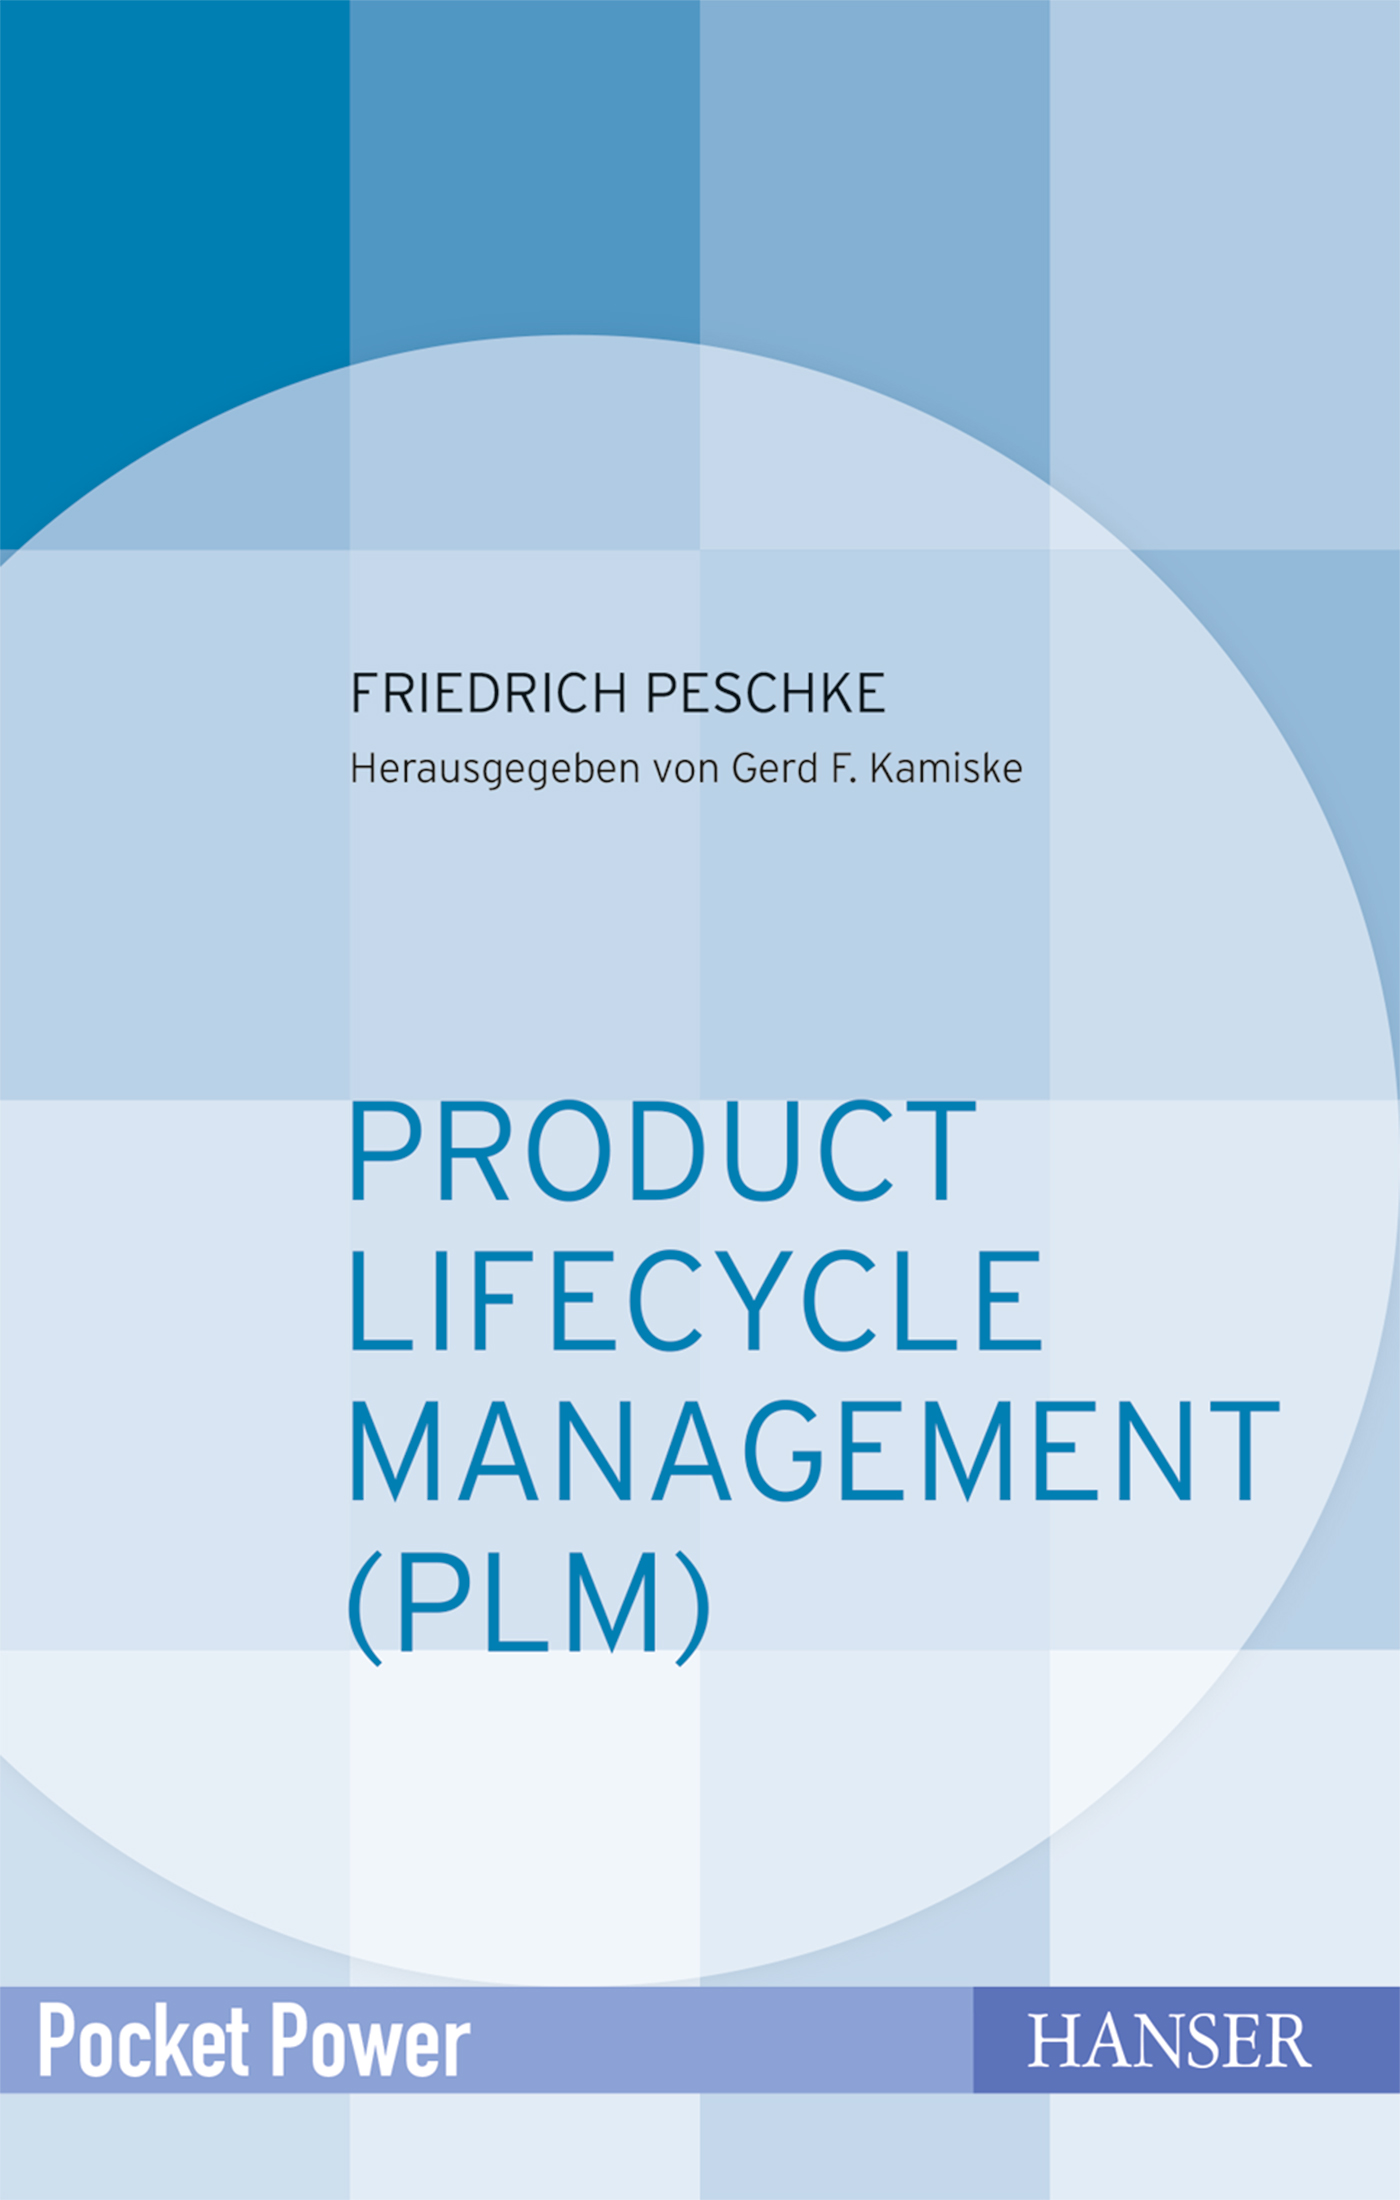 Peschke, Product Lifecycle Management (PLM), 978-3-446-45129-2